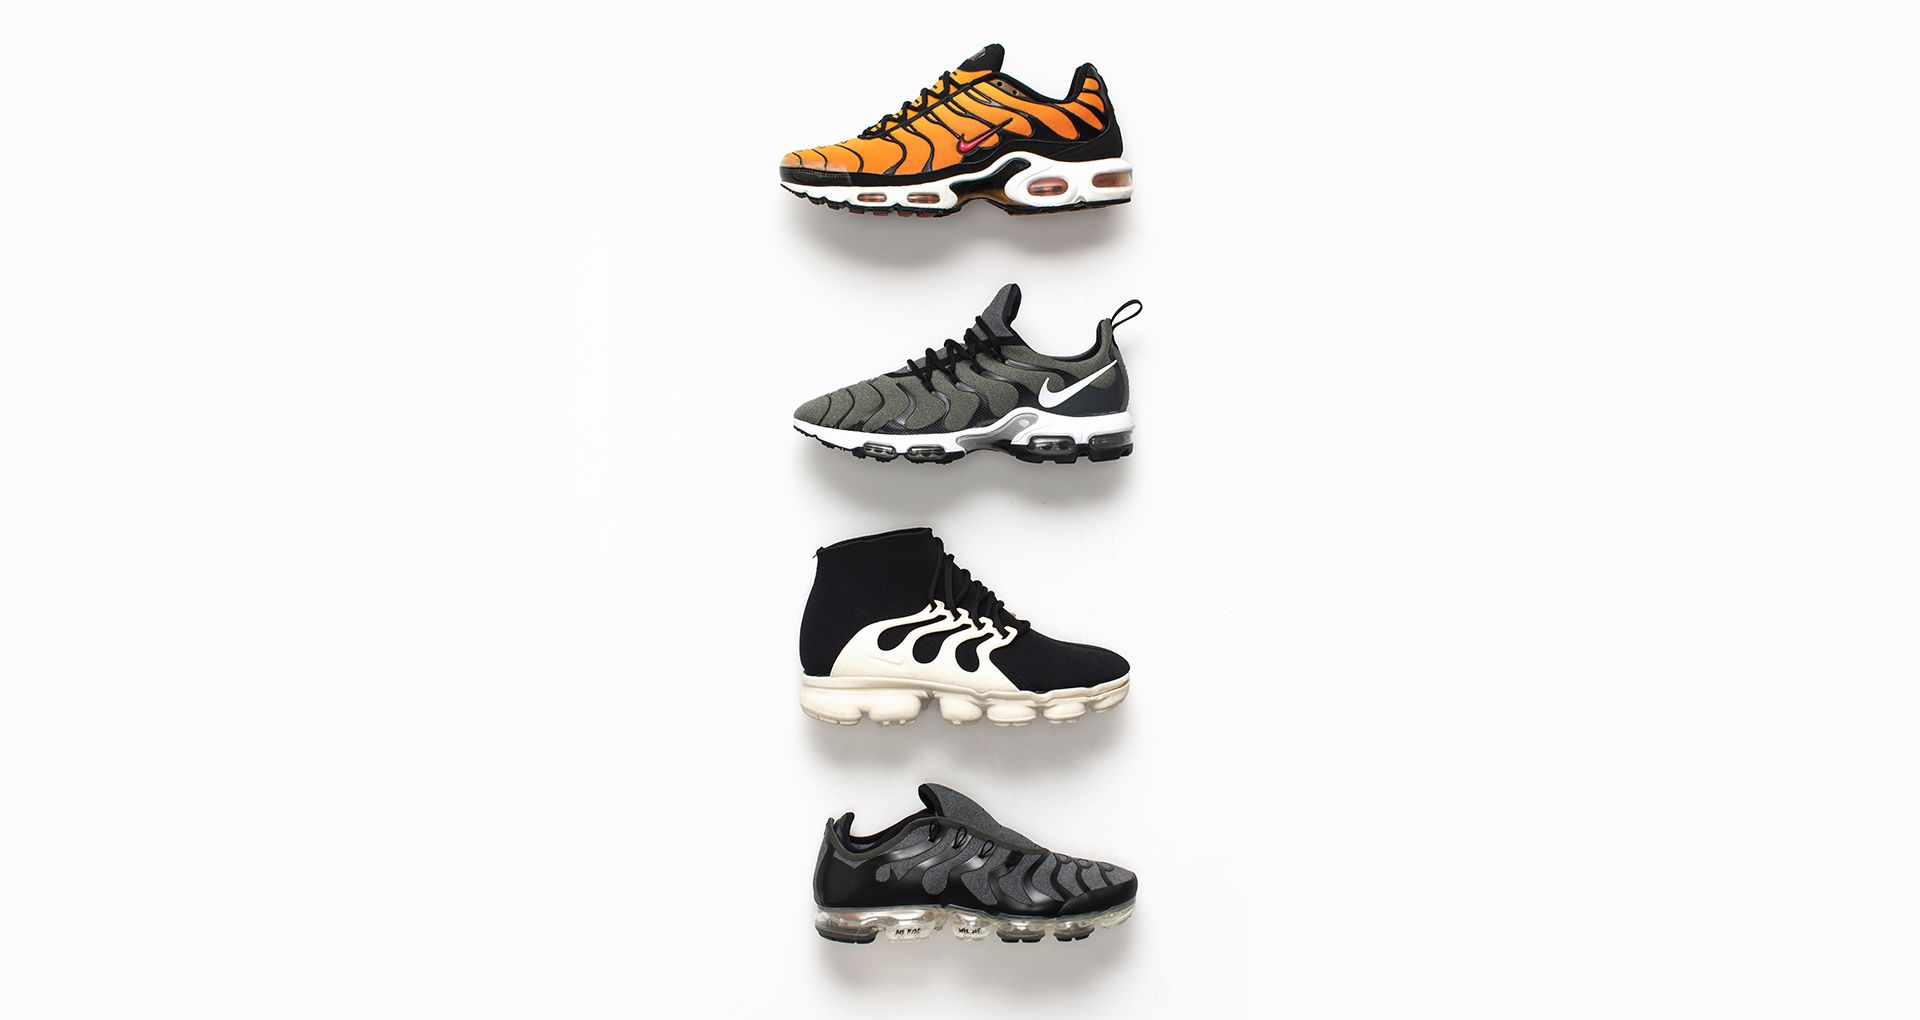 Fabrication Parfaite Promotions Nike Air Max Tn Dark Bleu